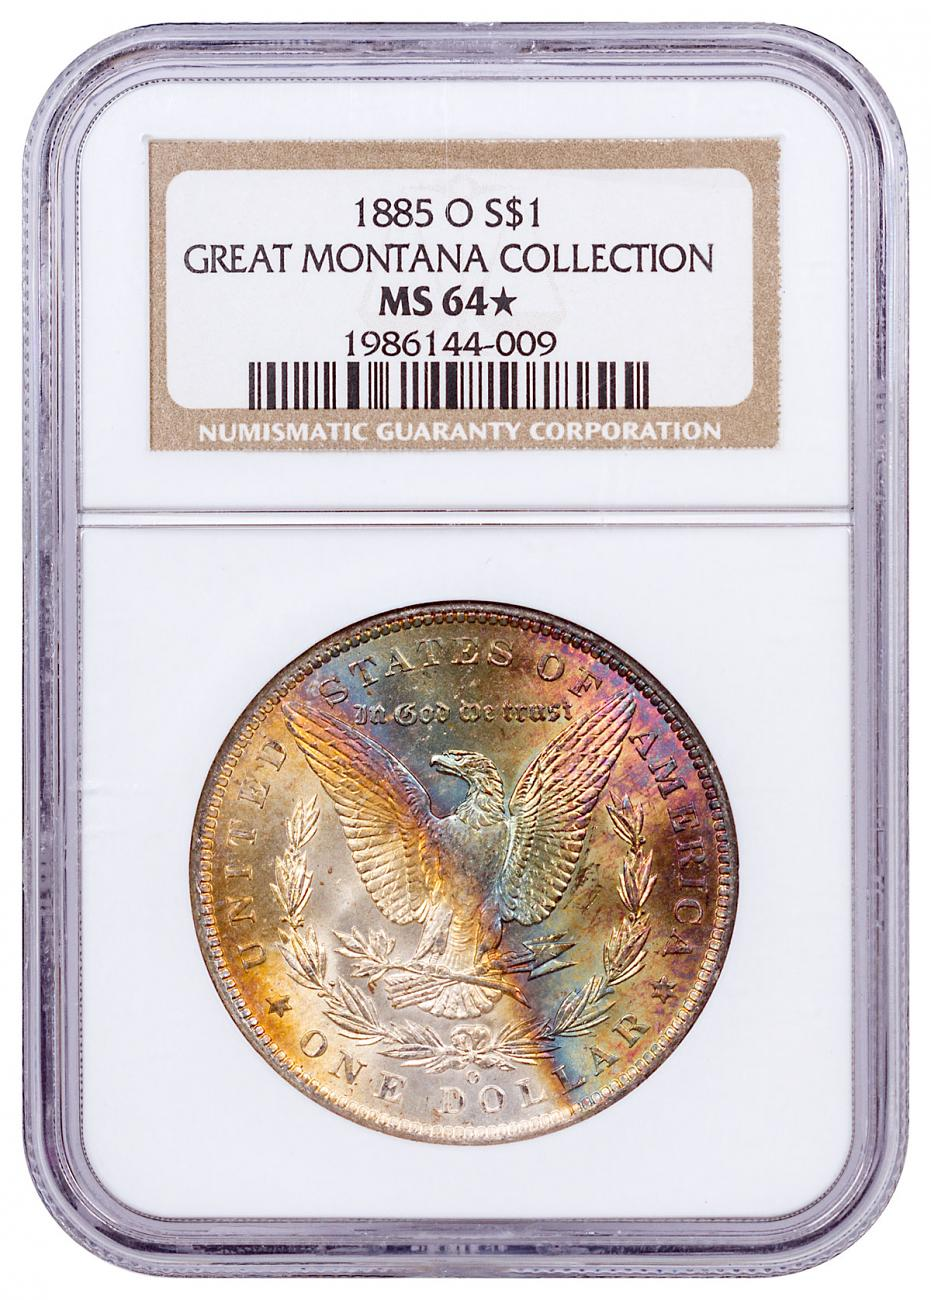 1885-O Morgan Silver Dollar From the Great Montana Collection NGC MS64* Rainbow Toned CPCR 4009